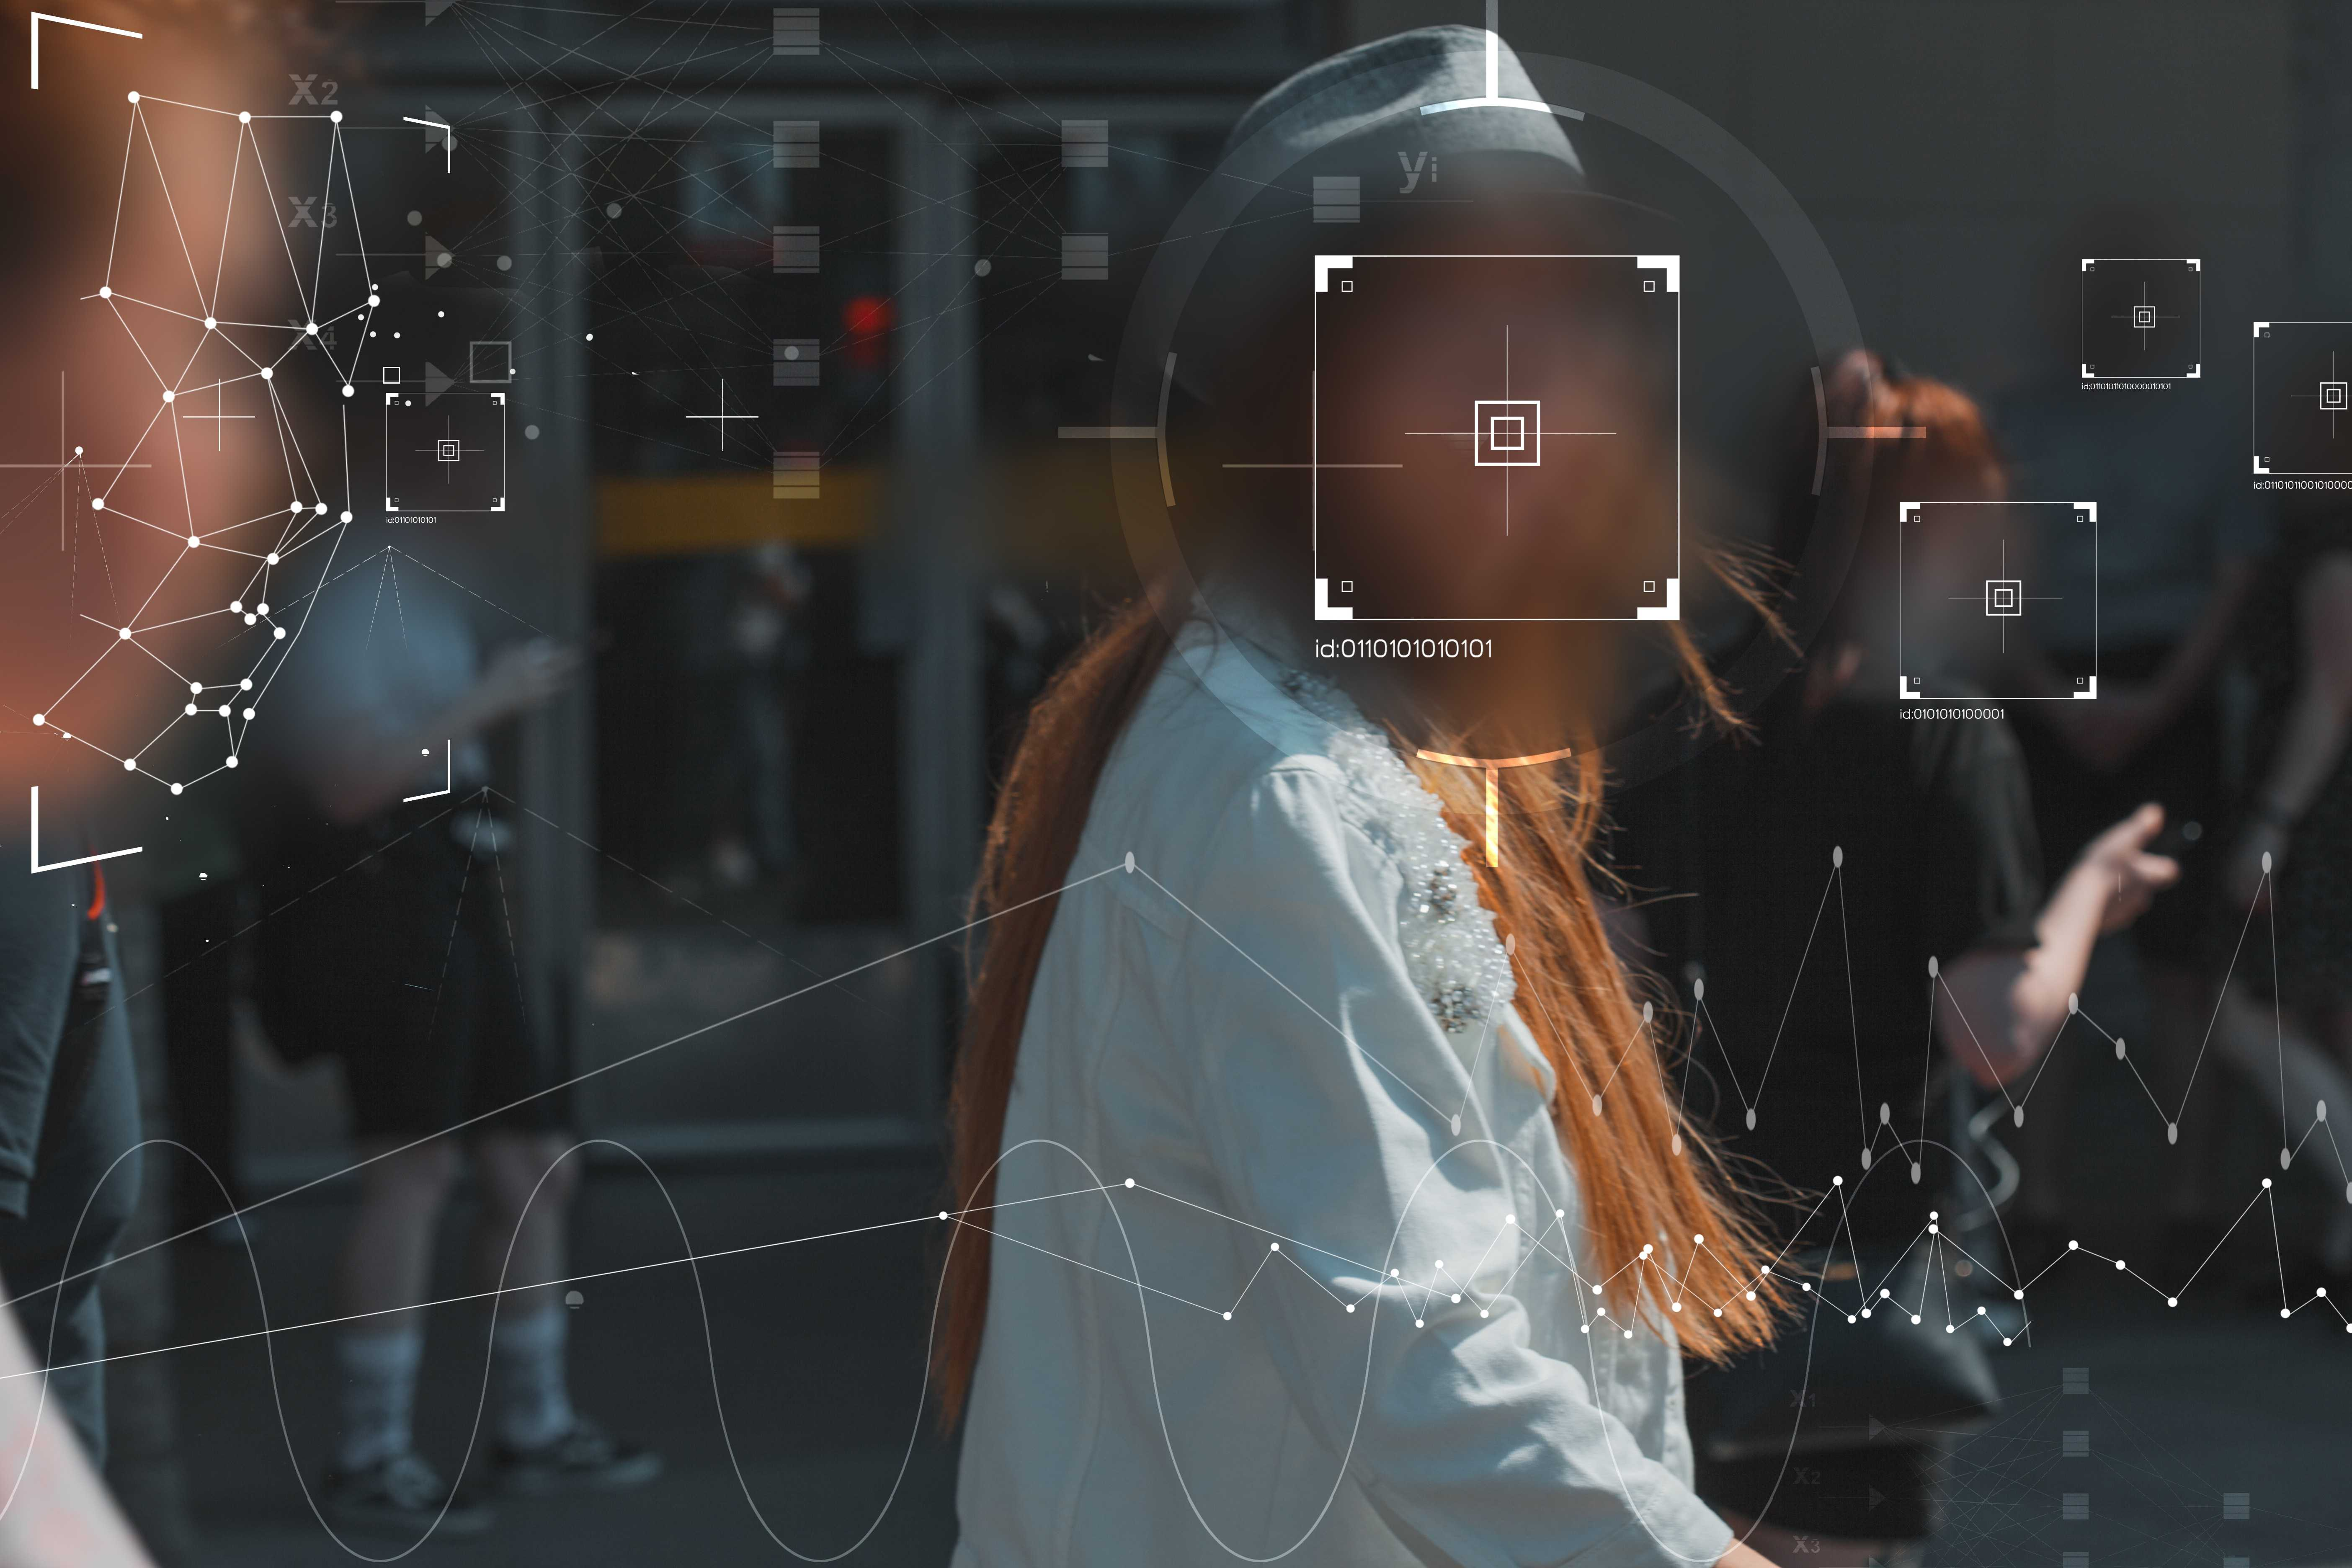 Use of facial recognition technology